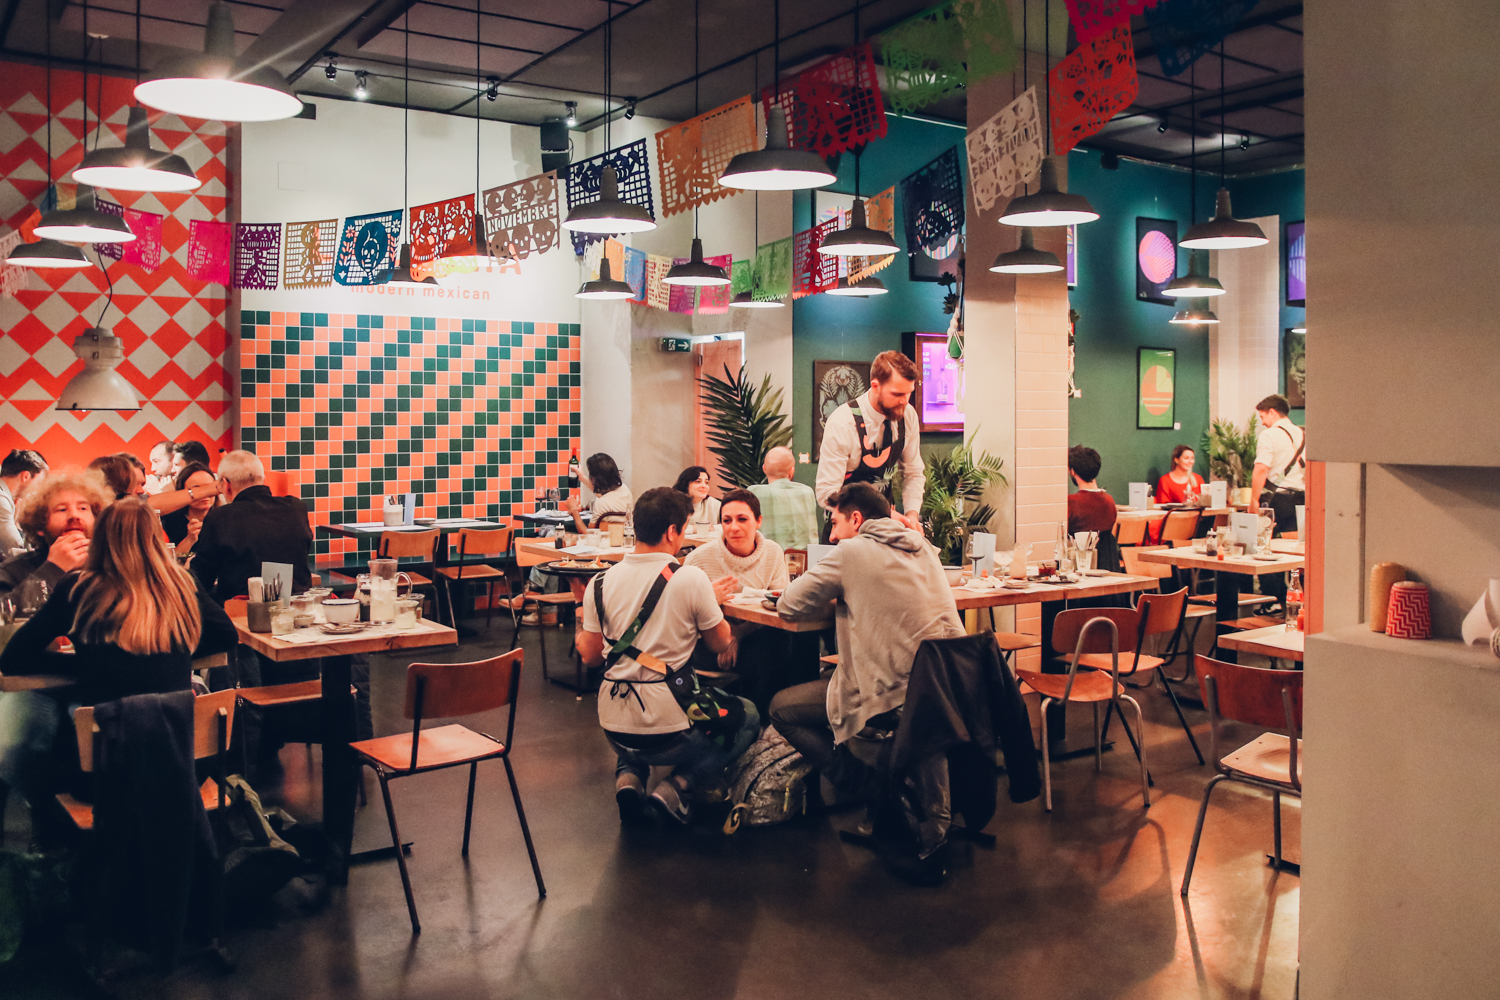 La Lucha: Reinventing Mexican Food in Kreuzberg